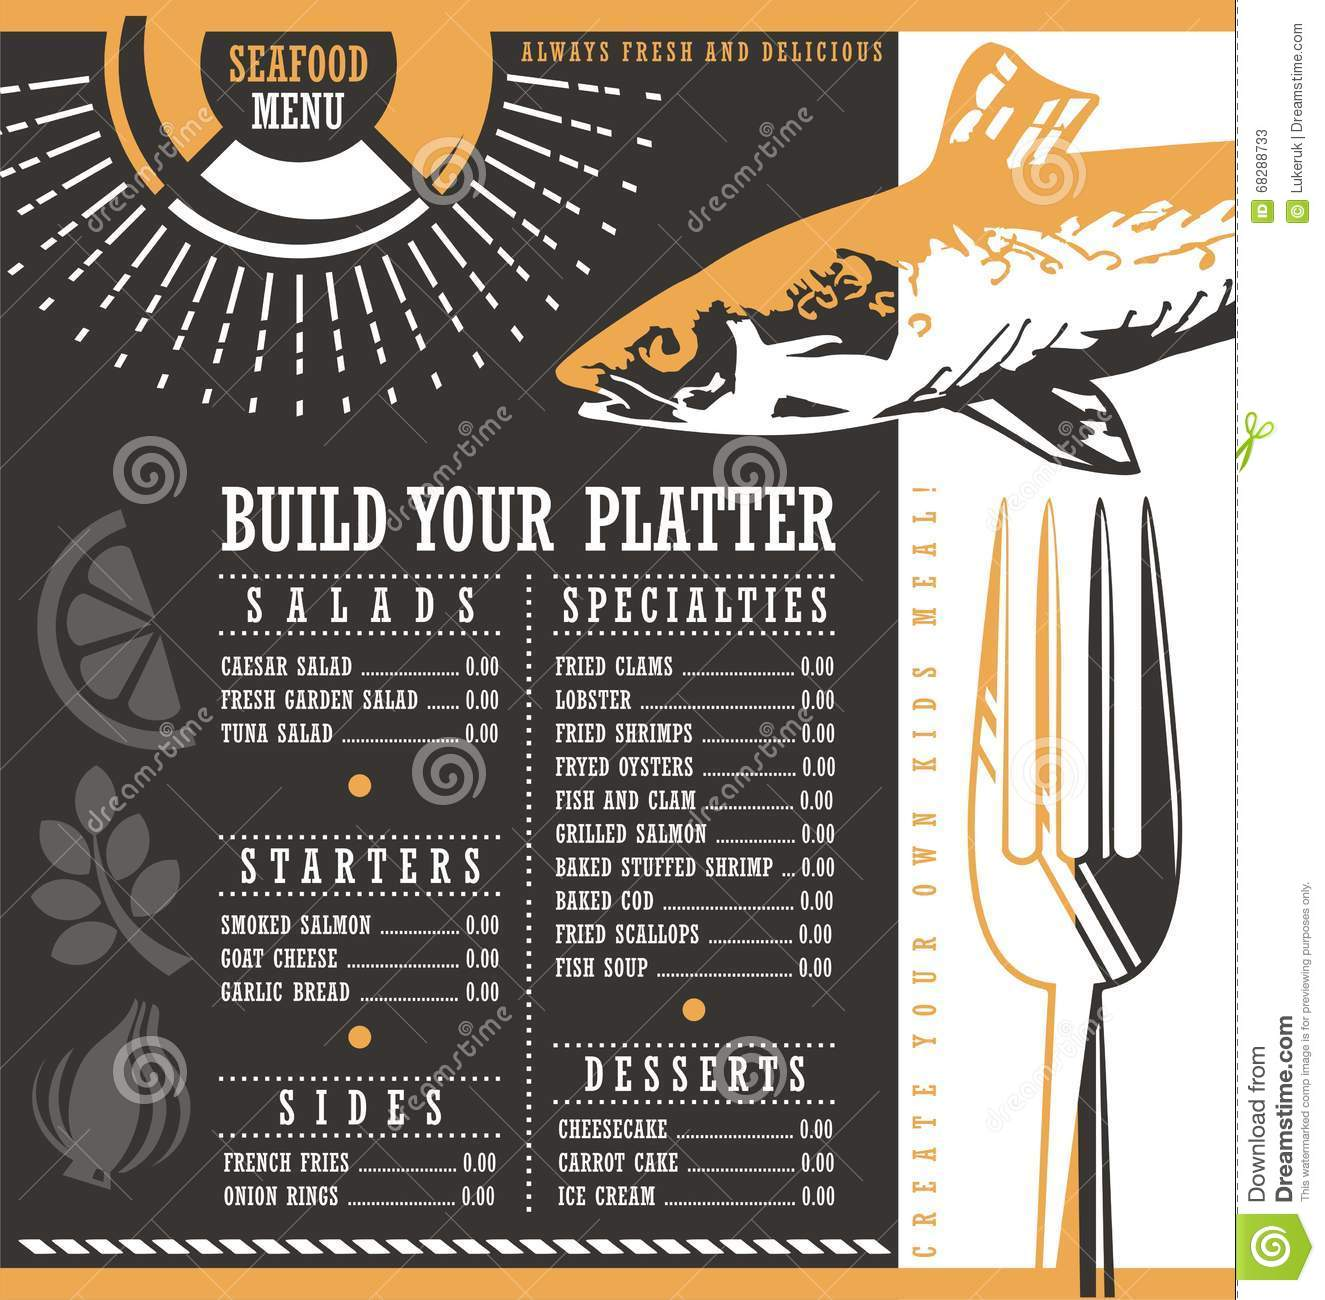 Seafood restaurant menu design cartoon vector